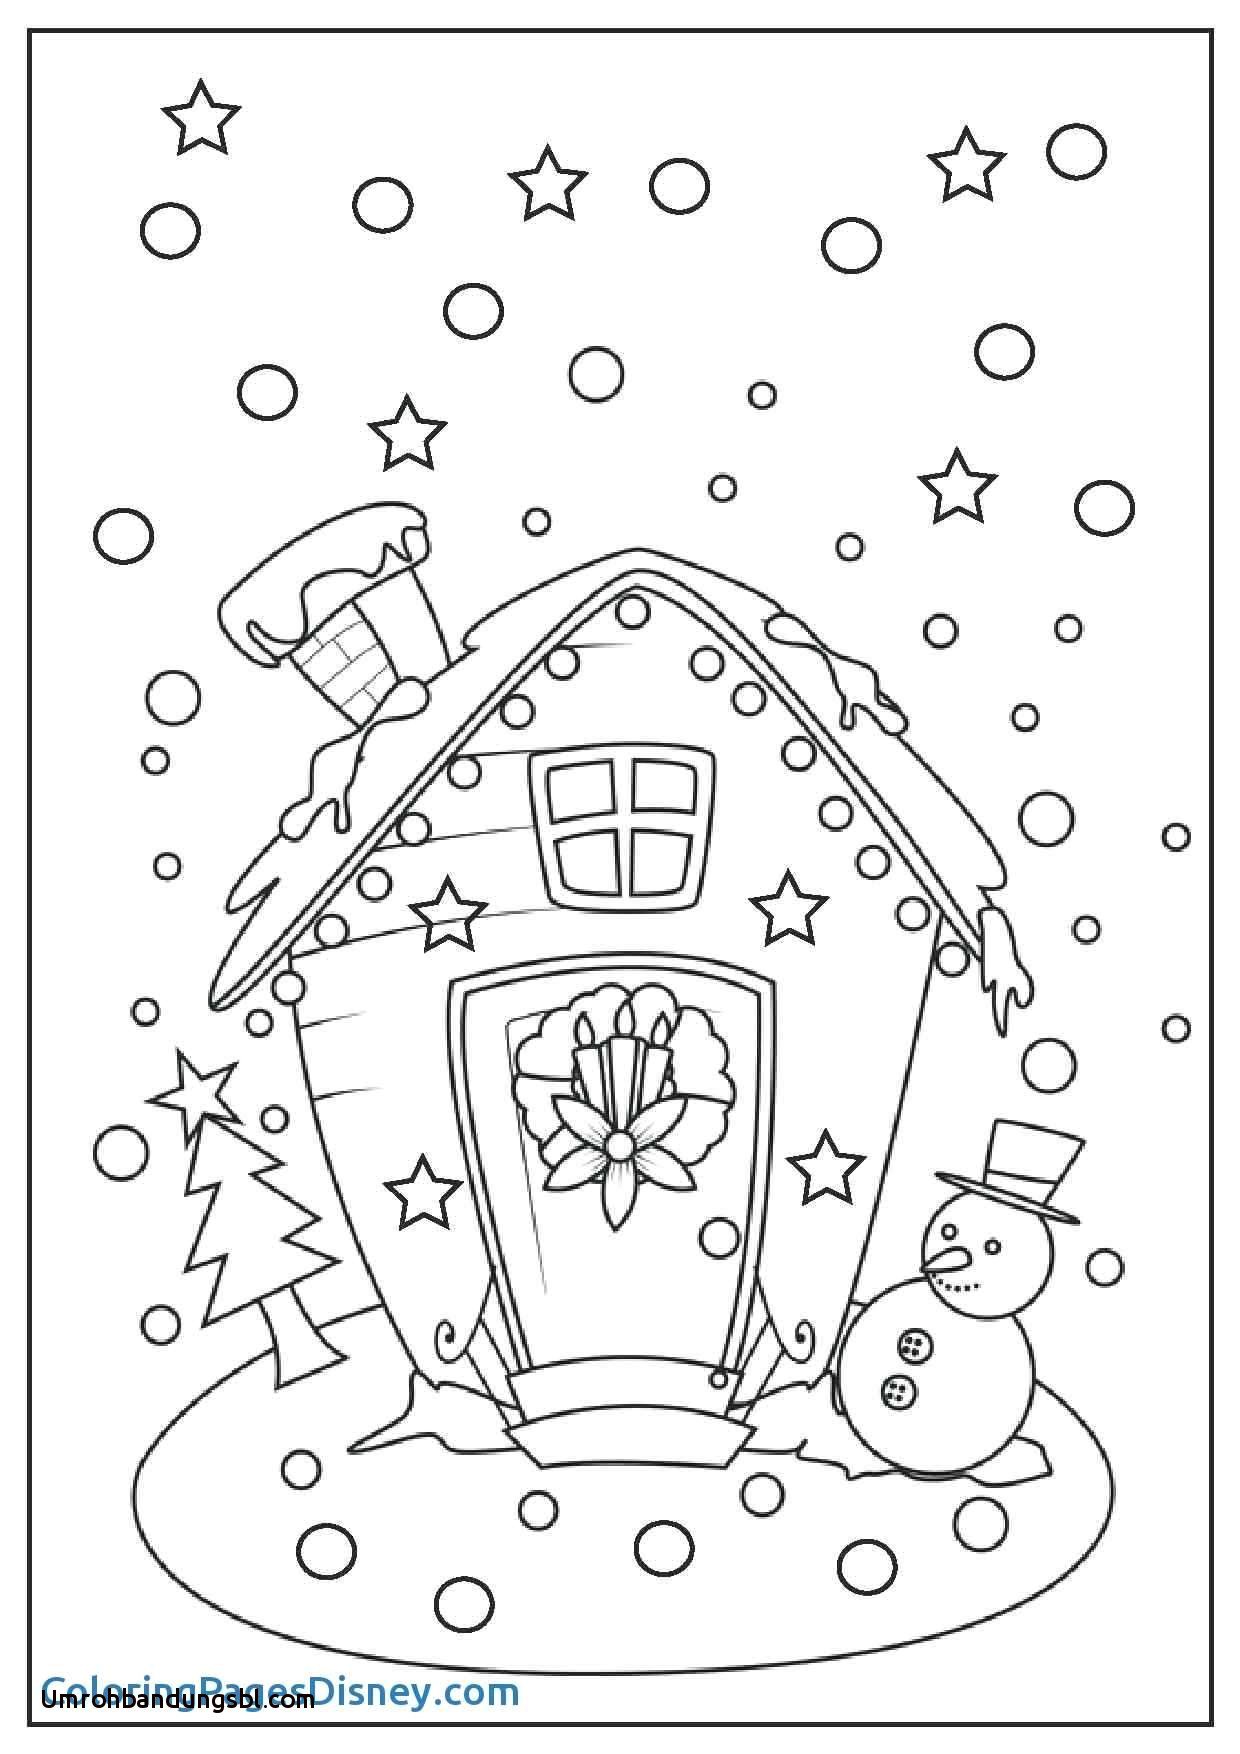 20 Coloring Pages Websites Free Download | Coloring Sheets